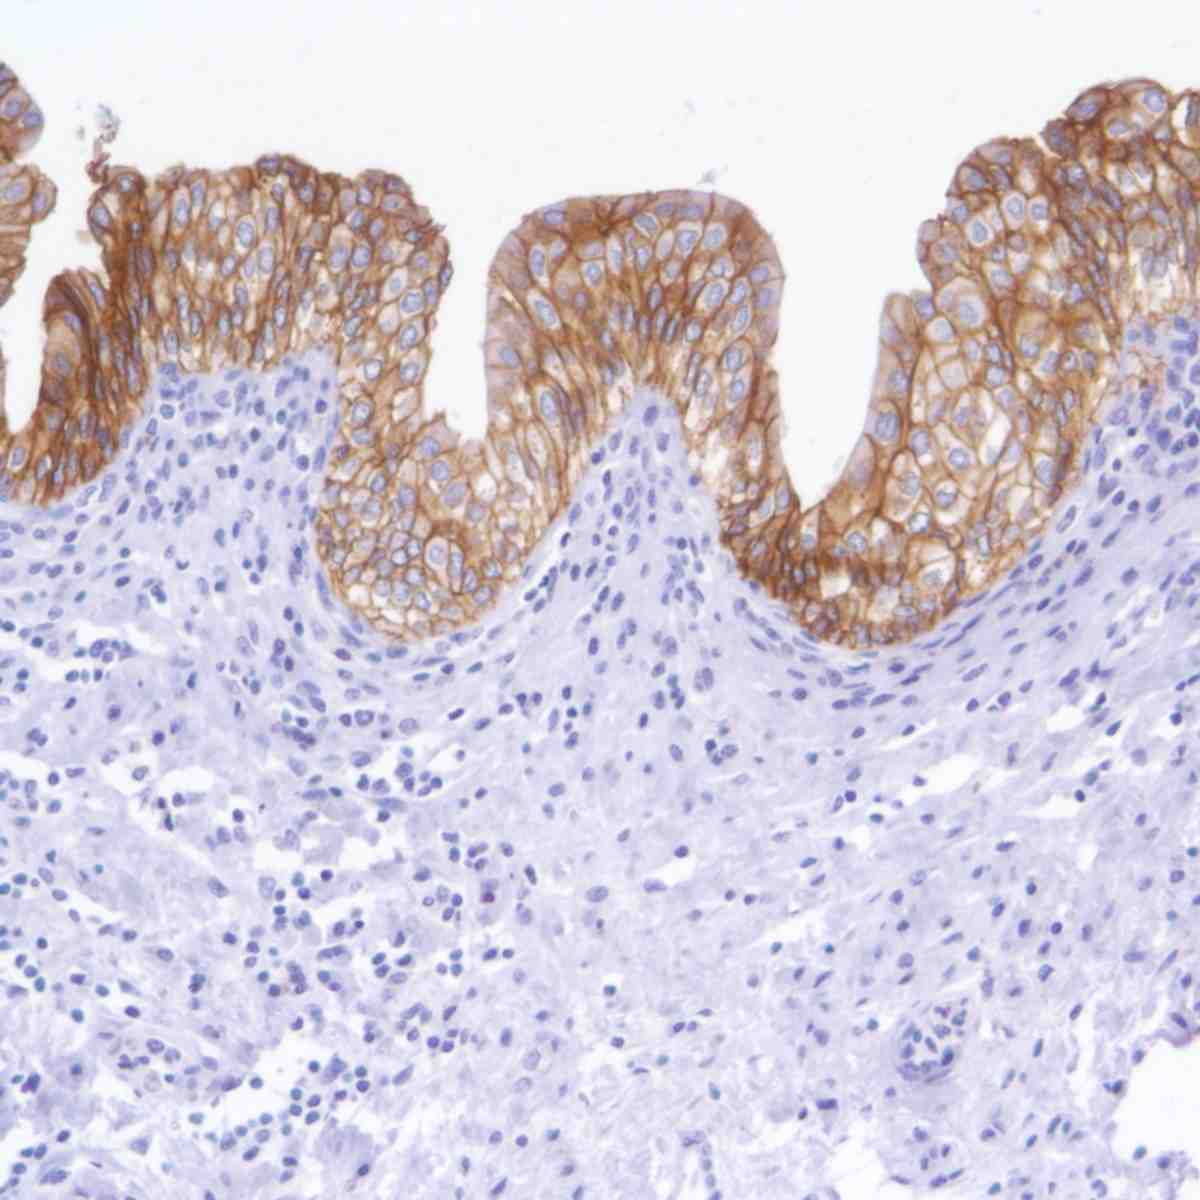 Human Bladder stained with anti-TROP-2 antibody